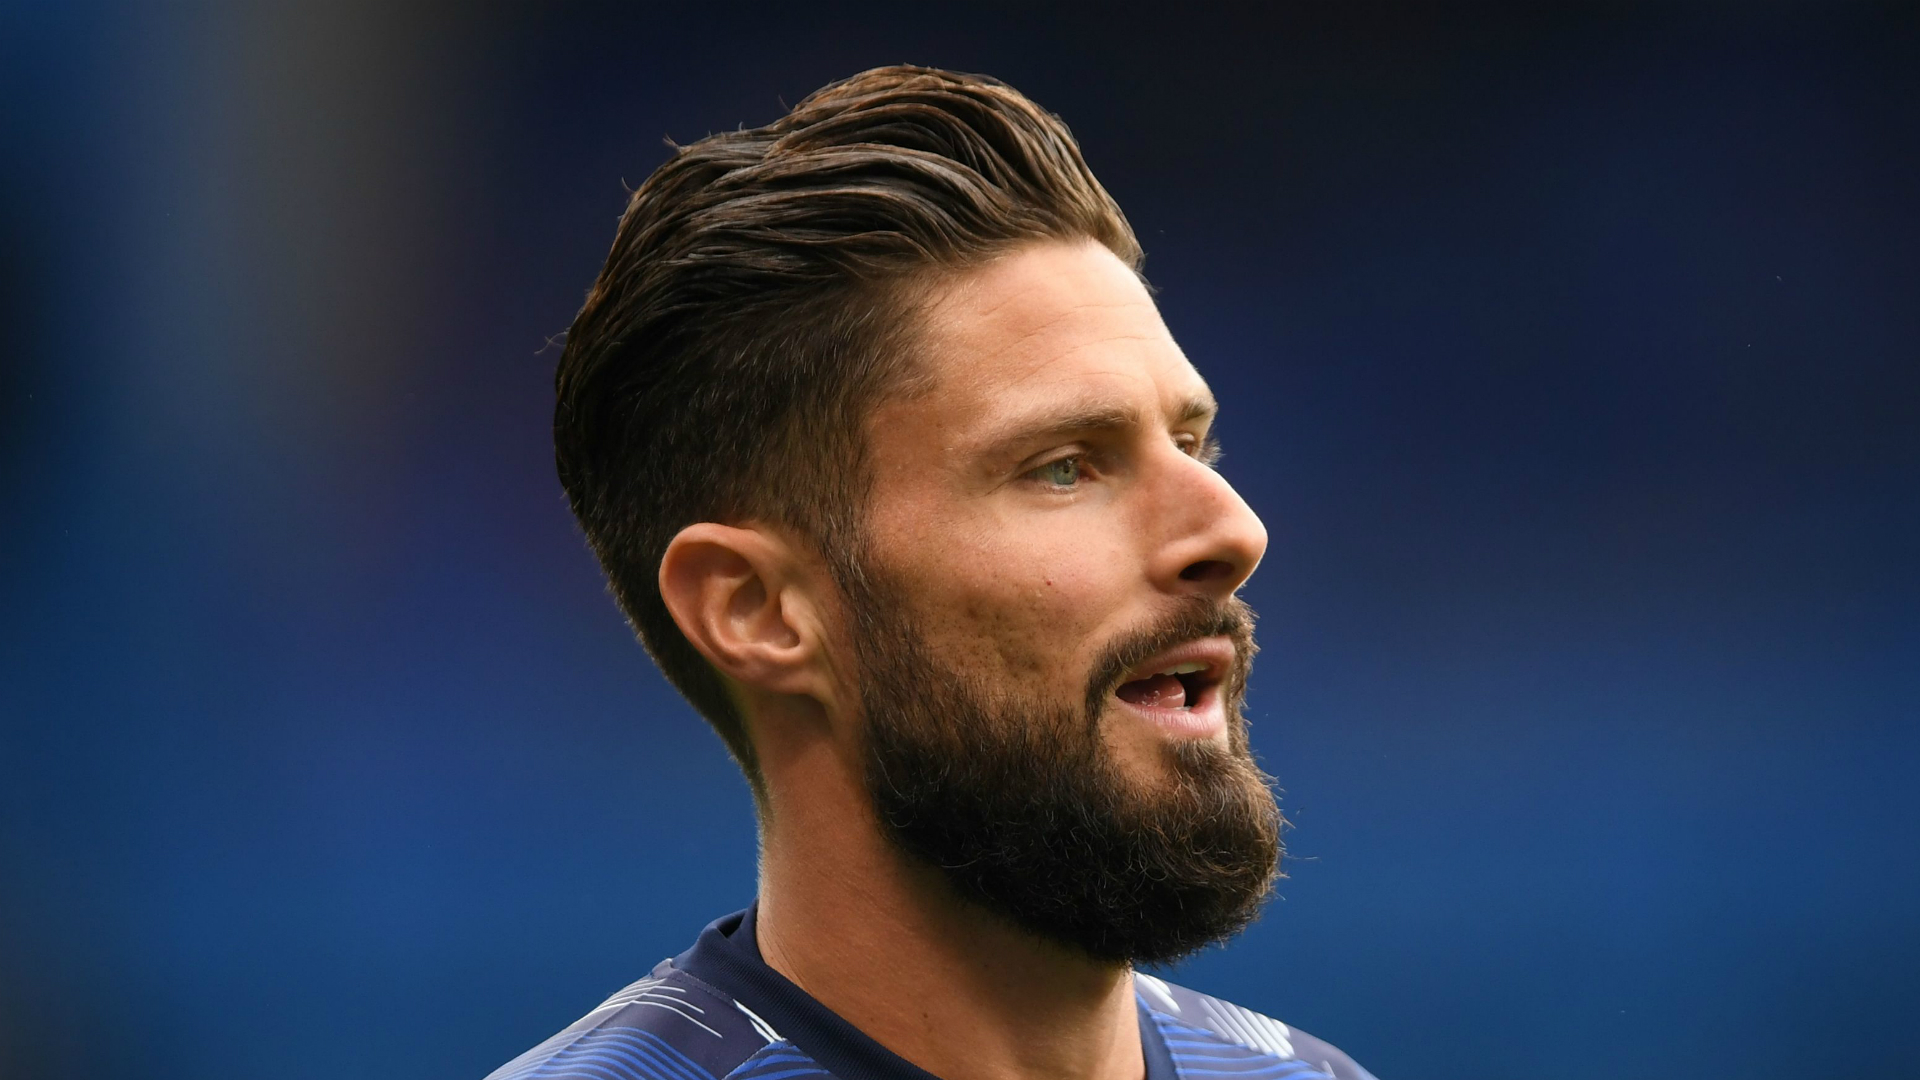 I'm not going anywhere without a fight - Giroud 'convinced' he can still play a part at Chelsea